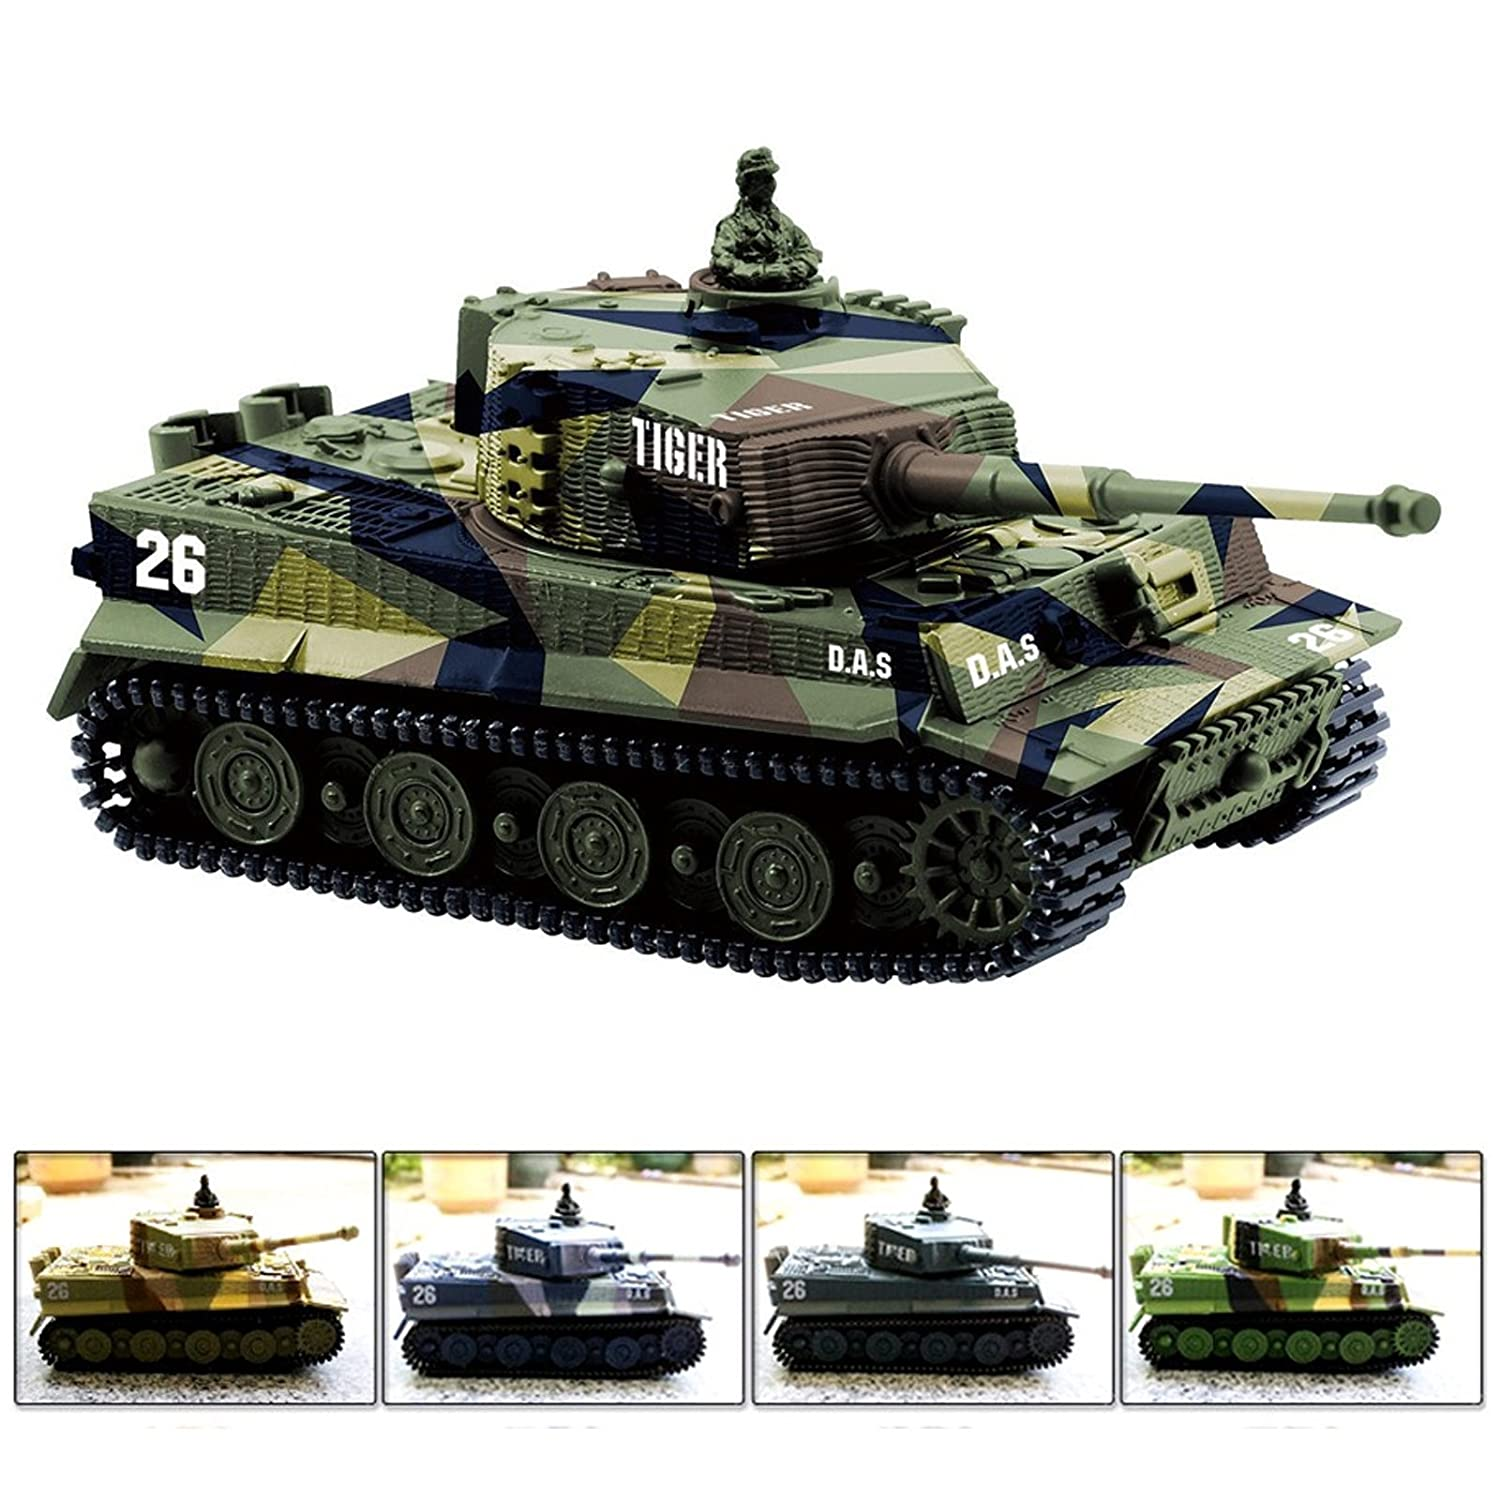 Cheerwing 1:72 German Tiger I Panzer Tank Remote Control Mini RC Tank With Sound Rotating Turret And Recoil Action When Cannon Artillery Shoots Vary Colors